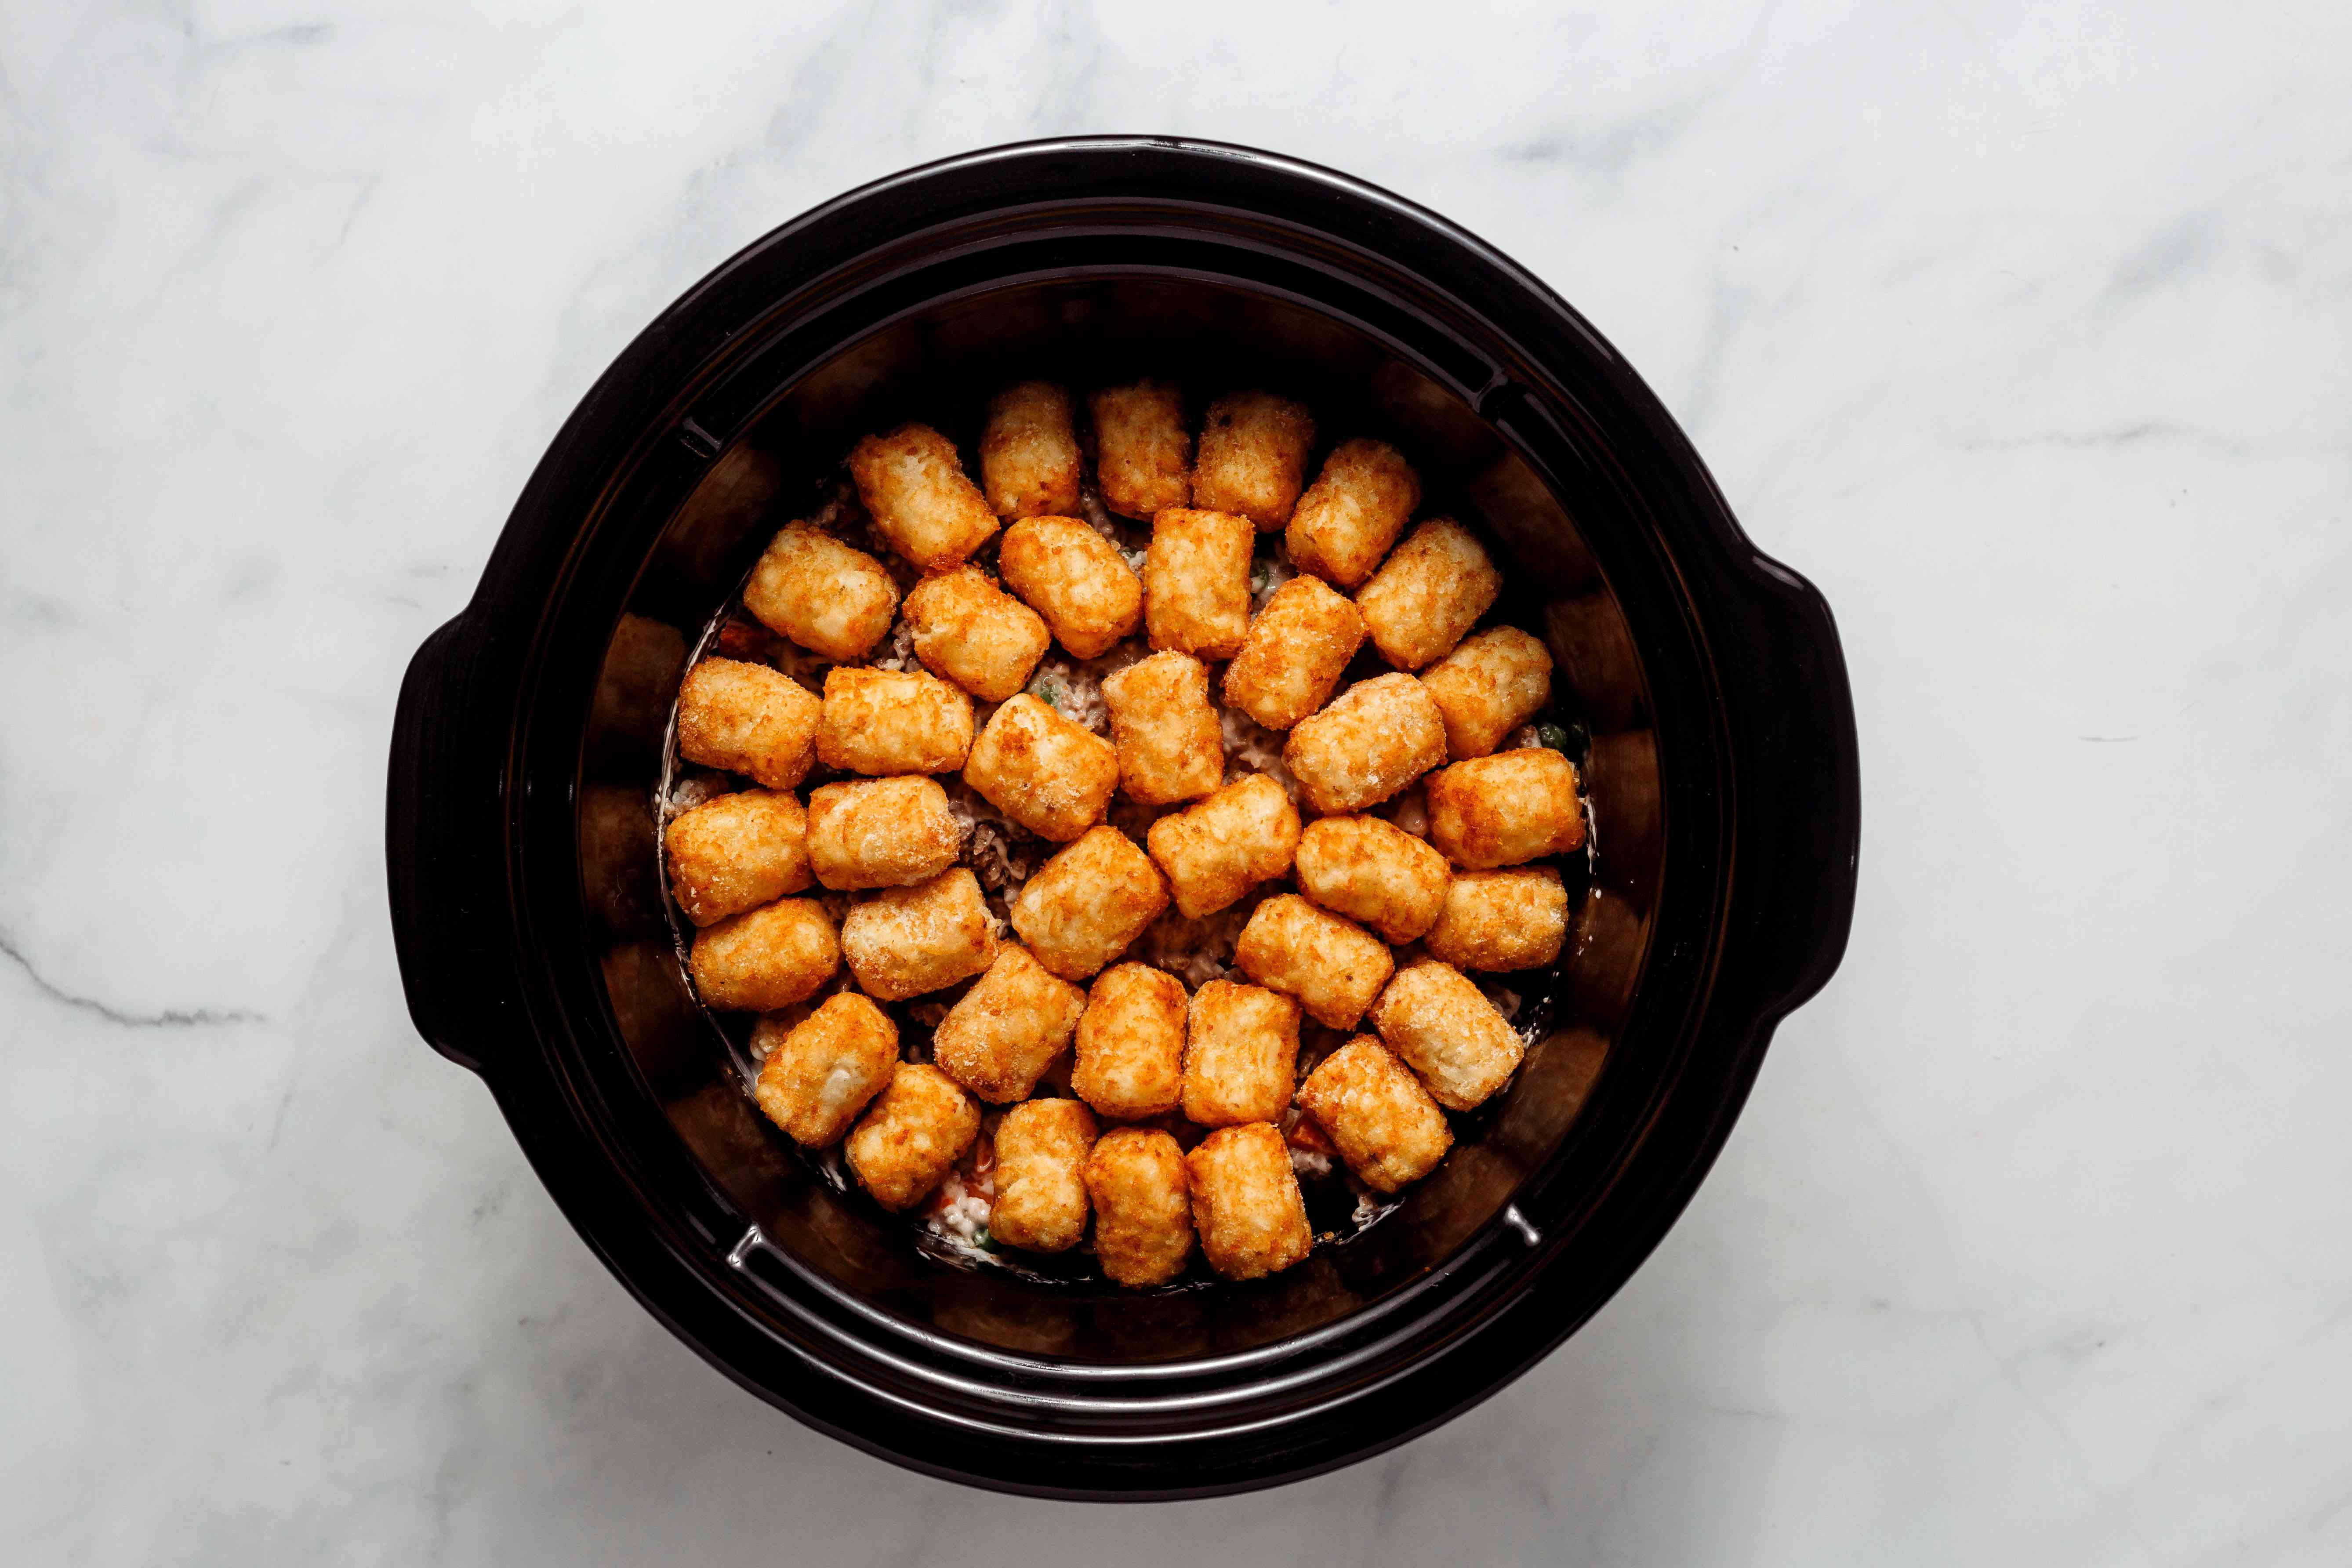 tater tots on top of the casserole mixture in a slow cooker